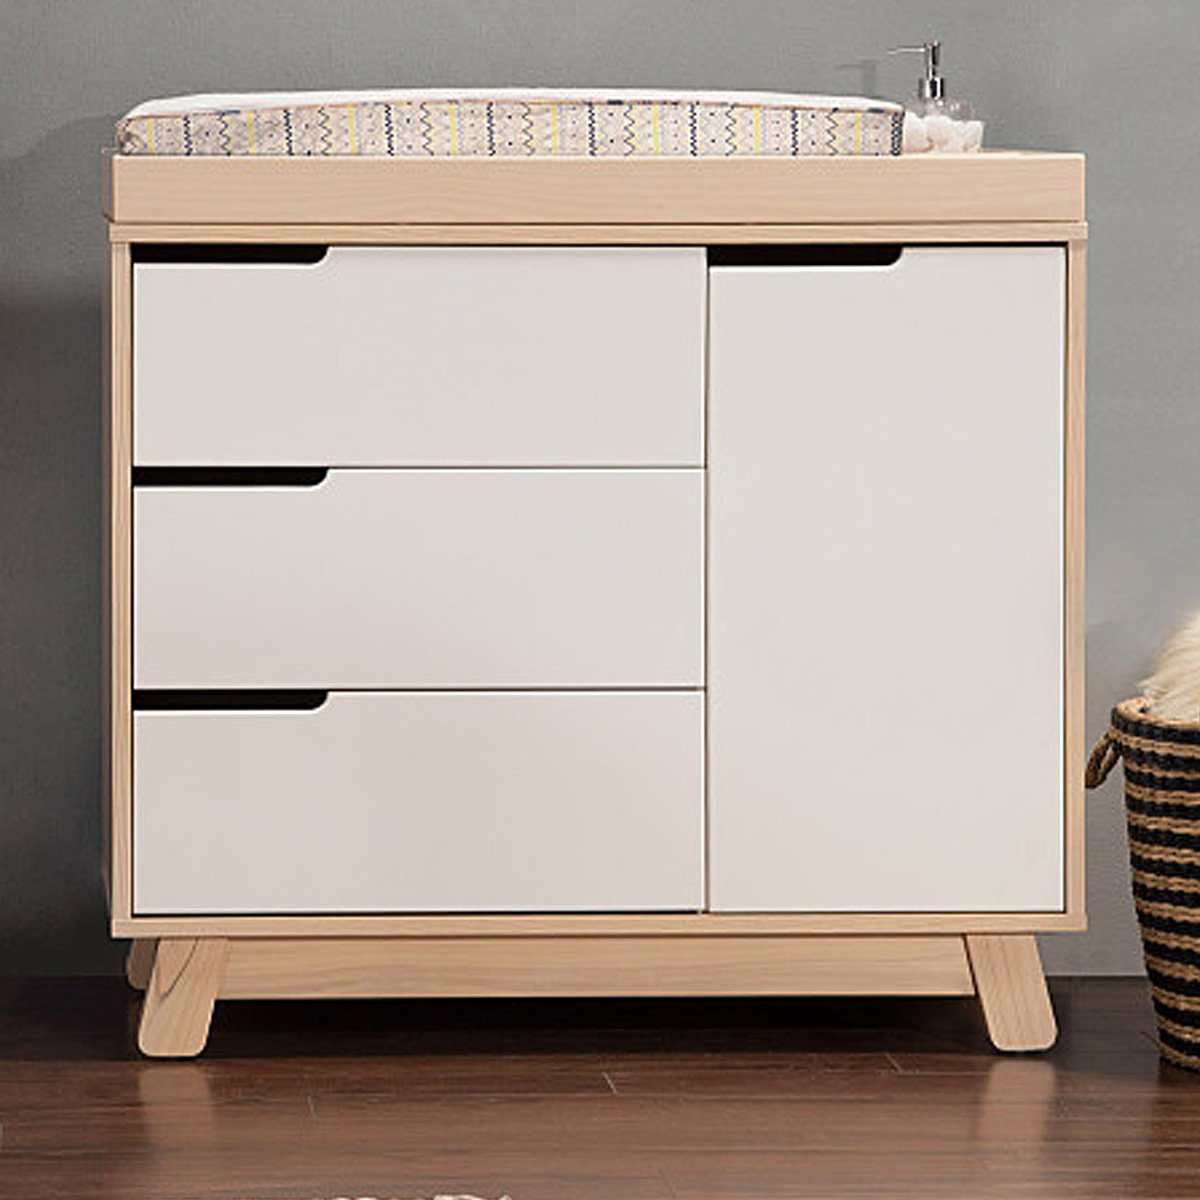 Babyletto Hudson 3 Drawer Changer Dresser W/ Removable Changing Tray In  Washed Natural/White FREE SHIPPING